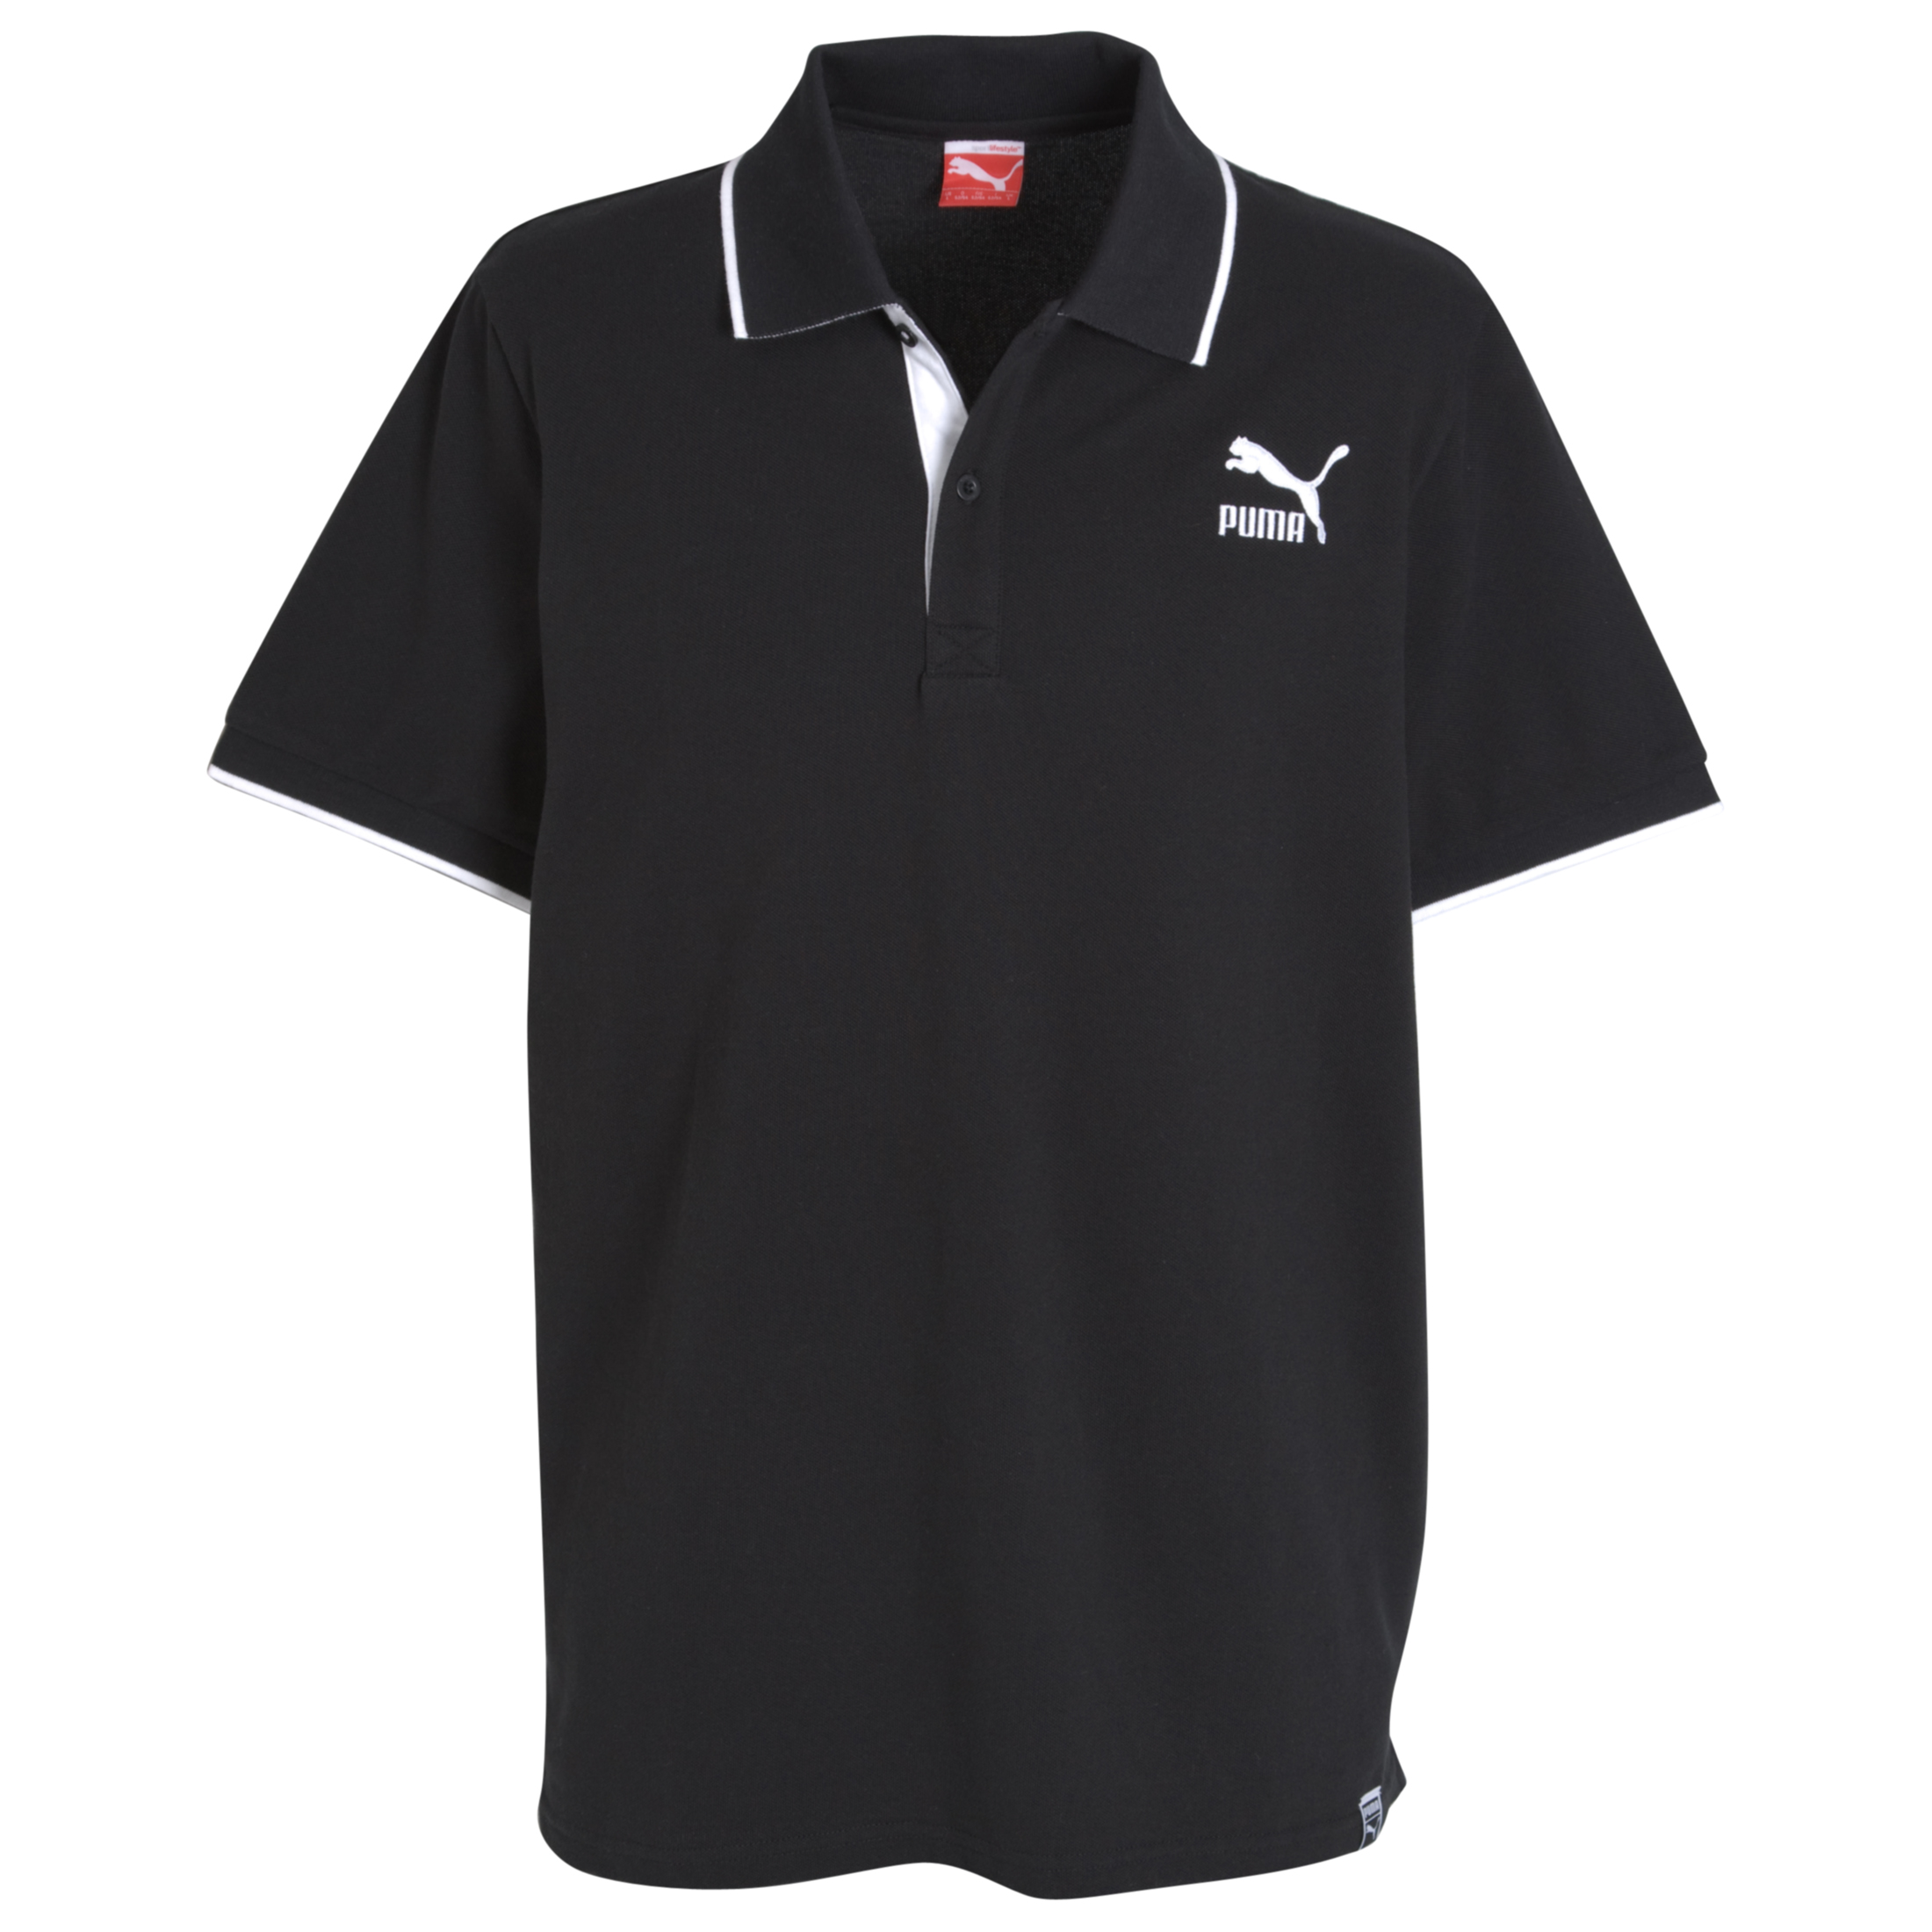 Puma Heroes Polo Shirt - Black